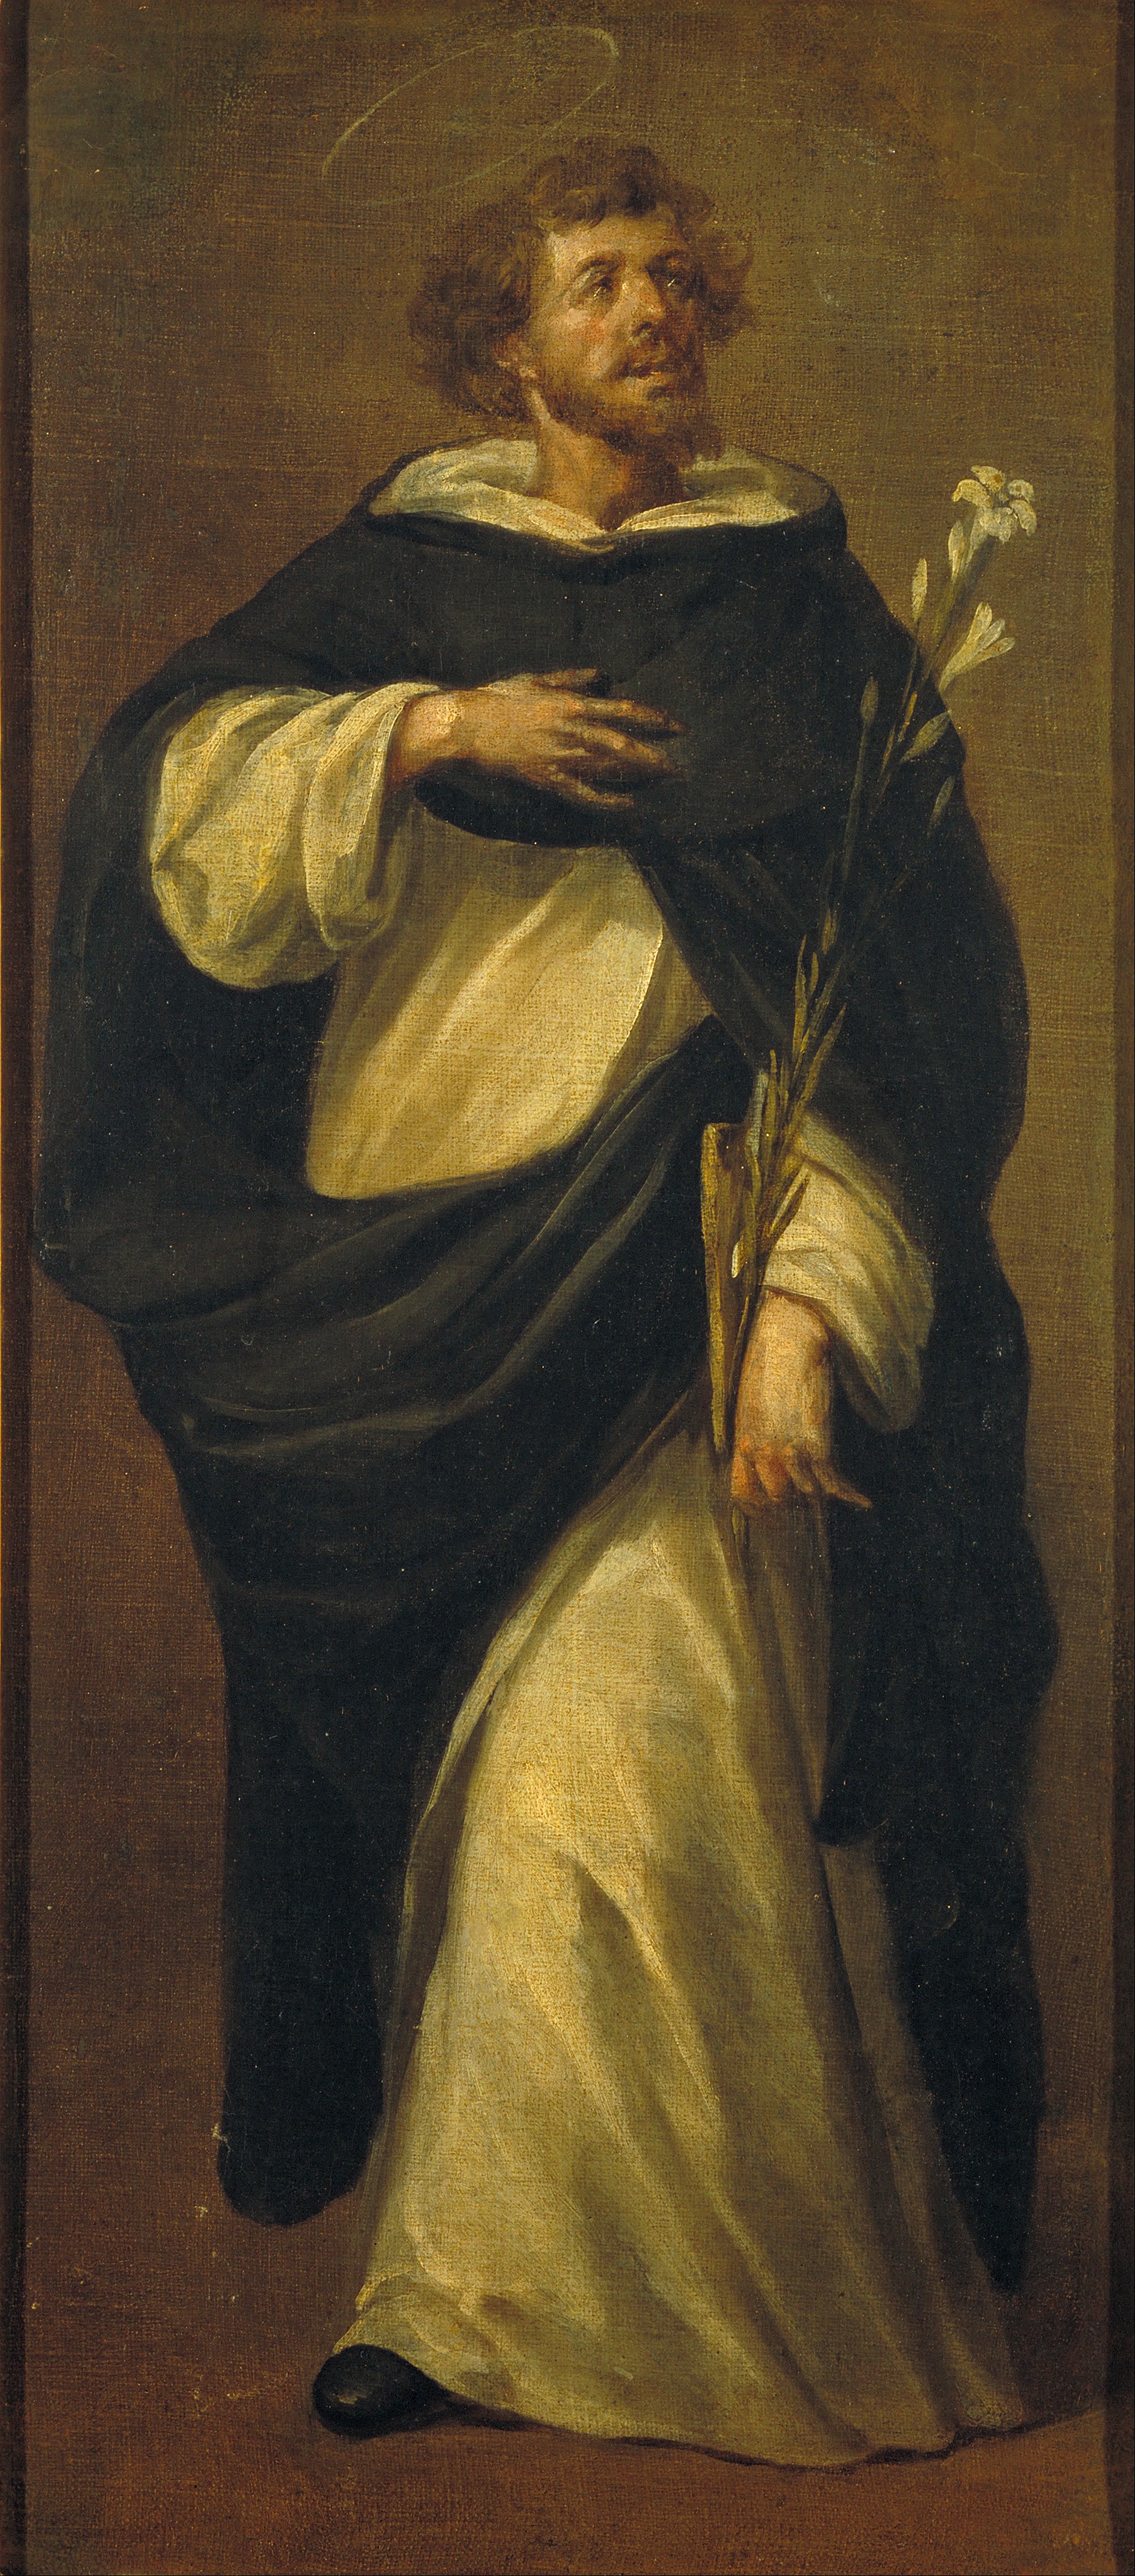 St Dominic & the Rosary